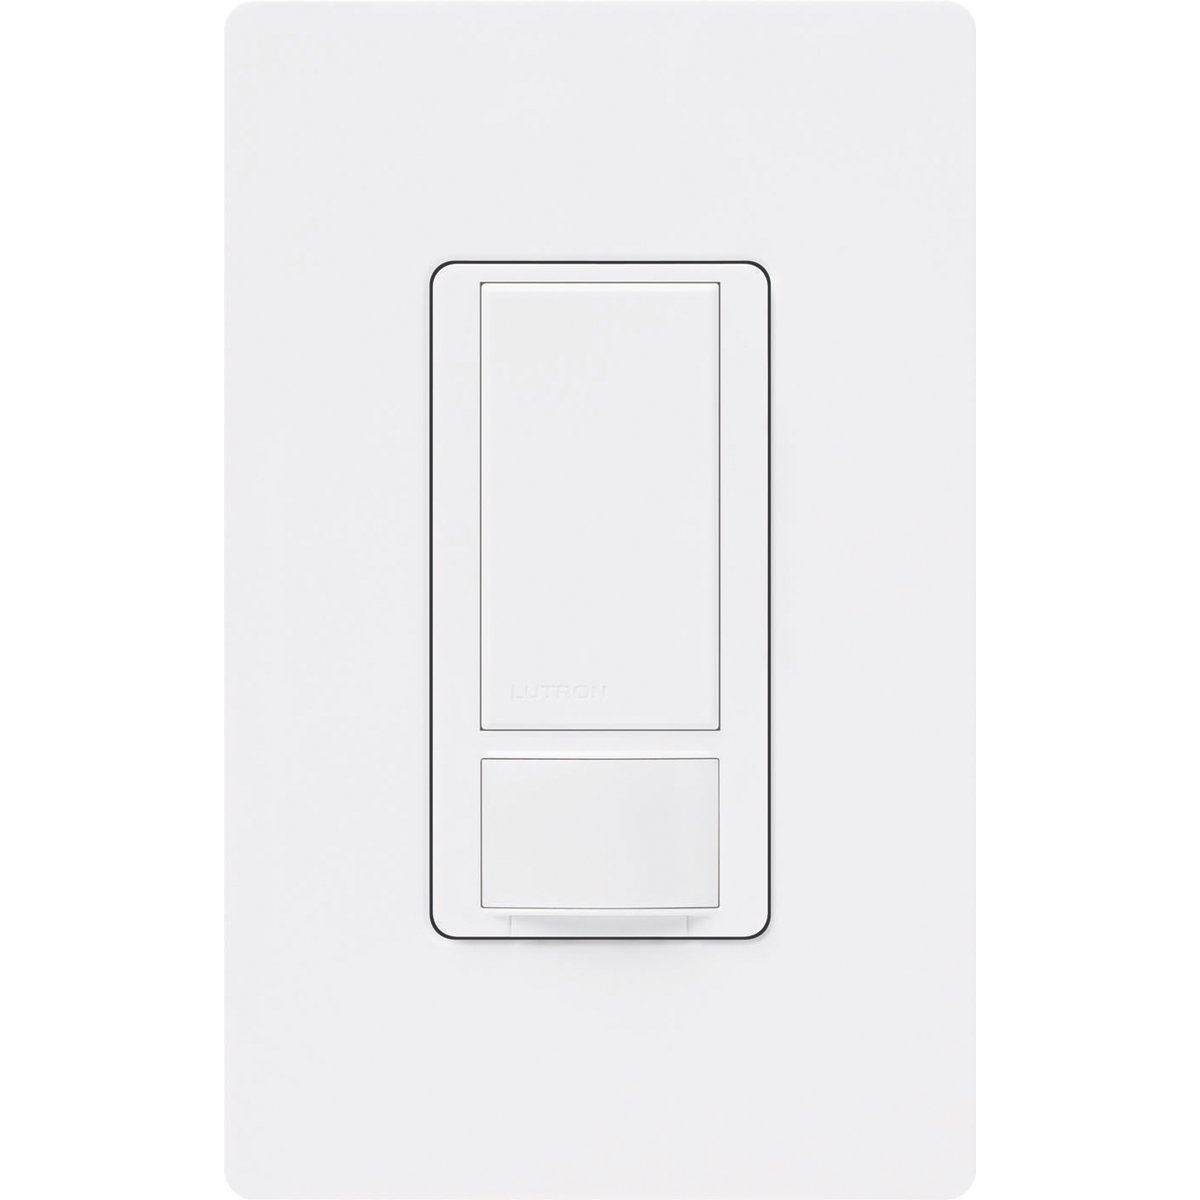 Lutron Maestro Sensor switch with Wallplate, 2A, No Neutral Required, Single-Pole, MS-OPS2HW-WH, White